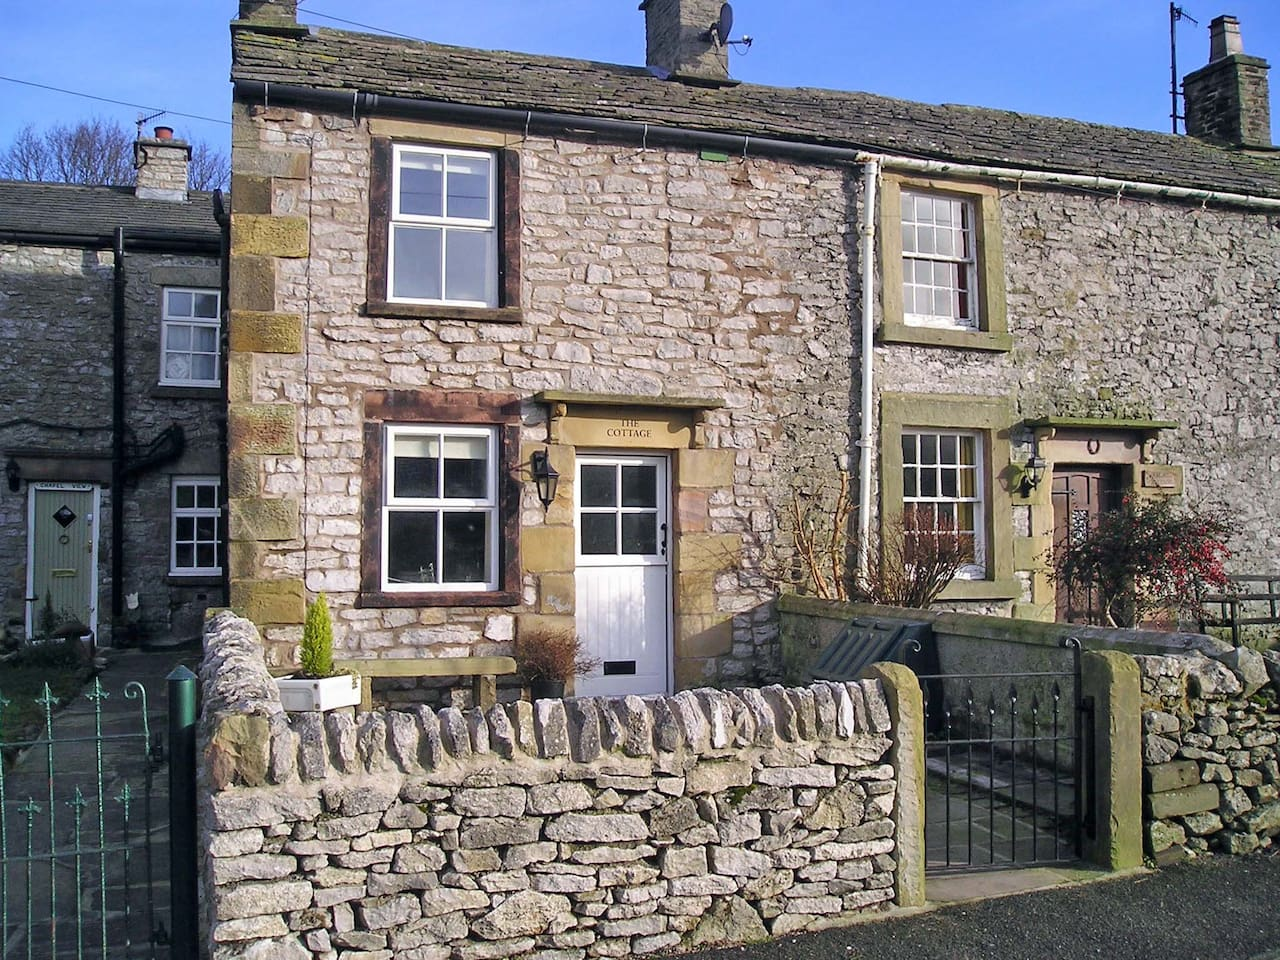 The Cottage is built with traditional, local stone.